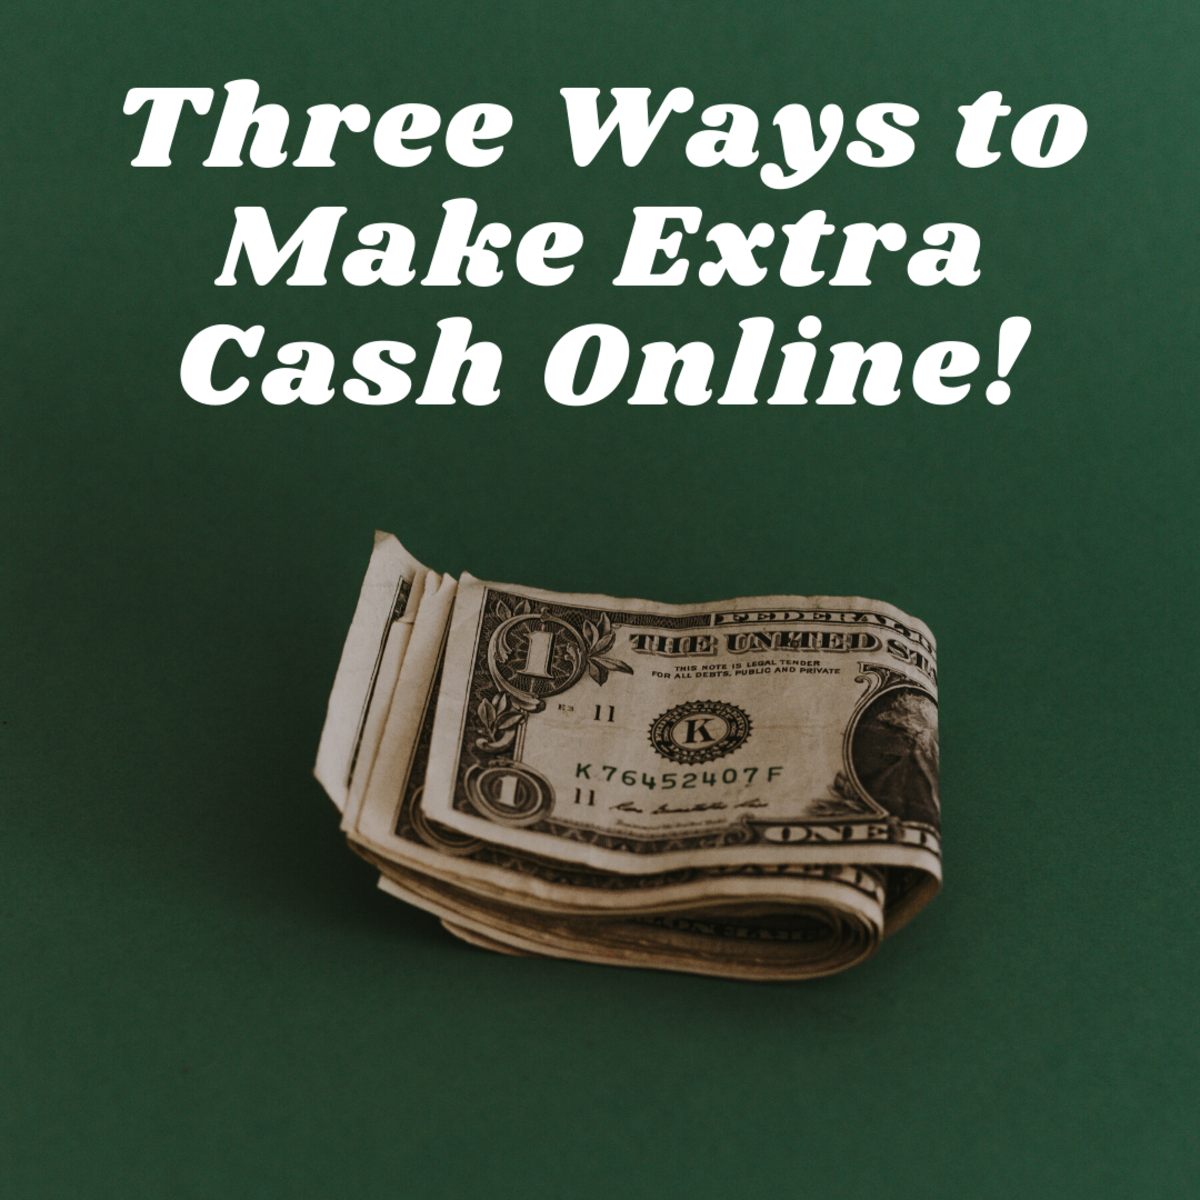 Three Ways to Make Extra Cash Online